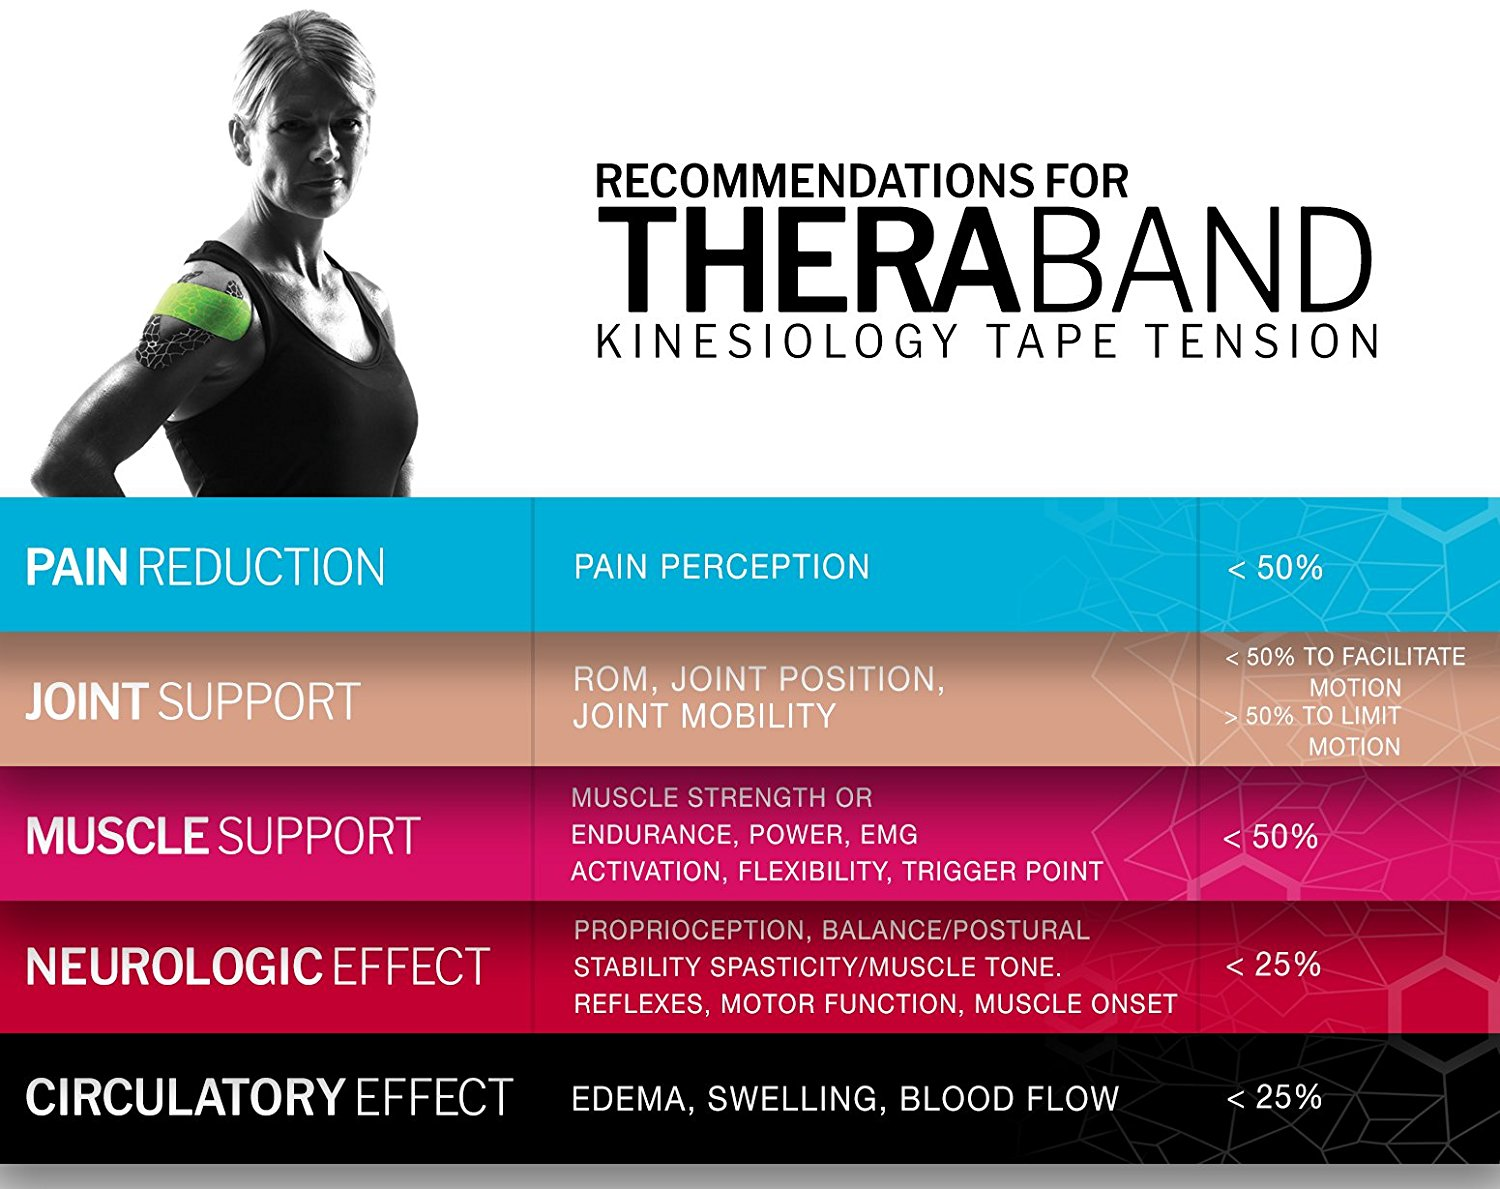 """Theraband Kinesiology Tapes - Xact Stretch Technology, Vibrant Colors - 2"""" Width x 16.4 Feet Long ( 5 Meters)"""